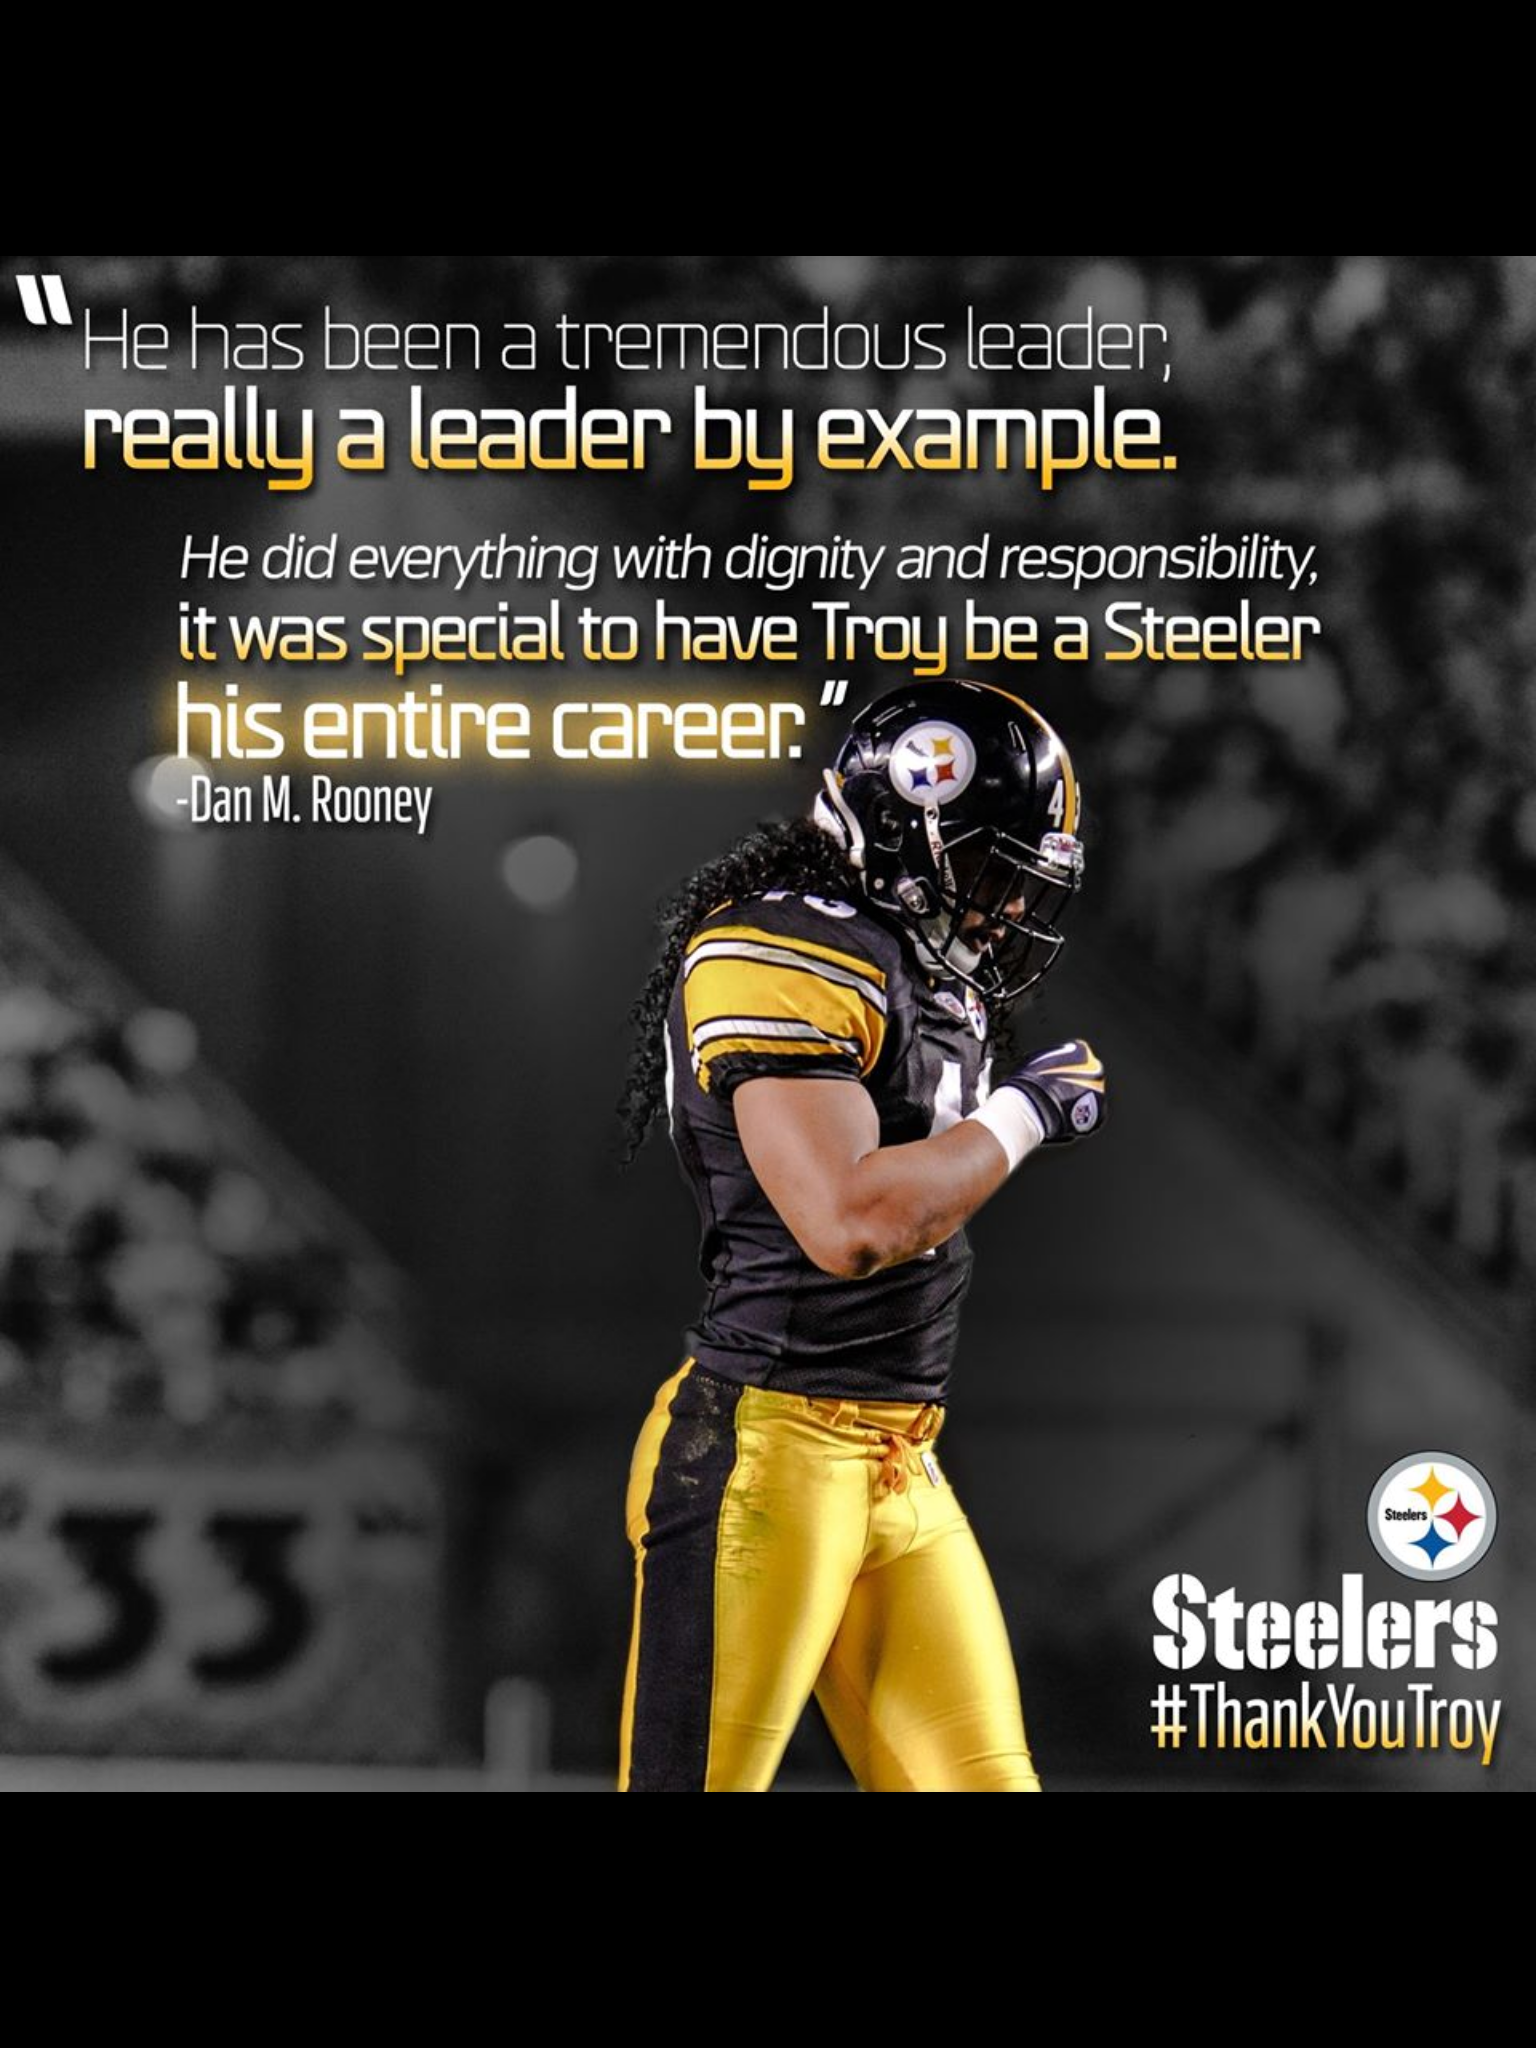 Pin by Kevin Alba on Steelers in 2020 Steelers